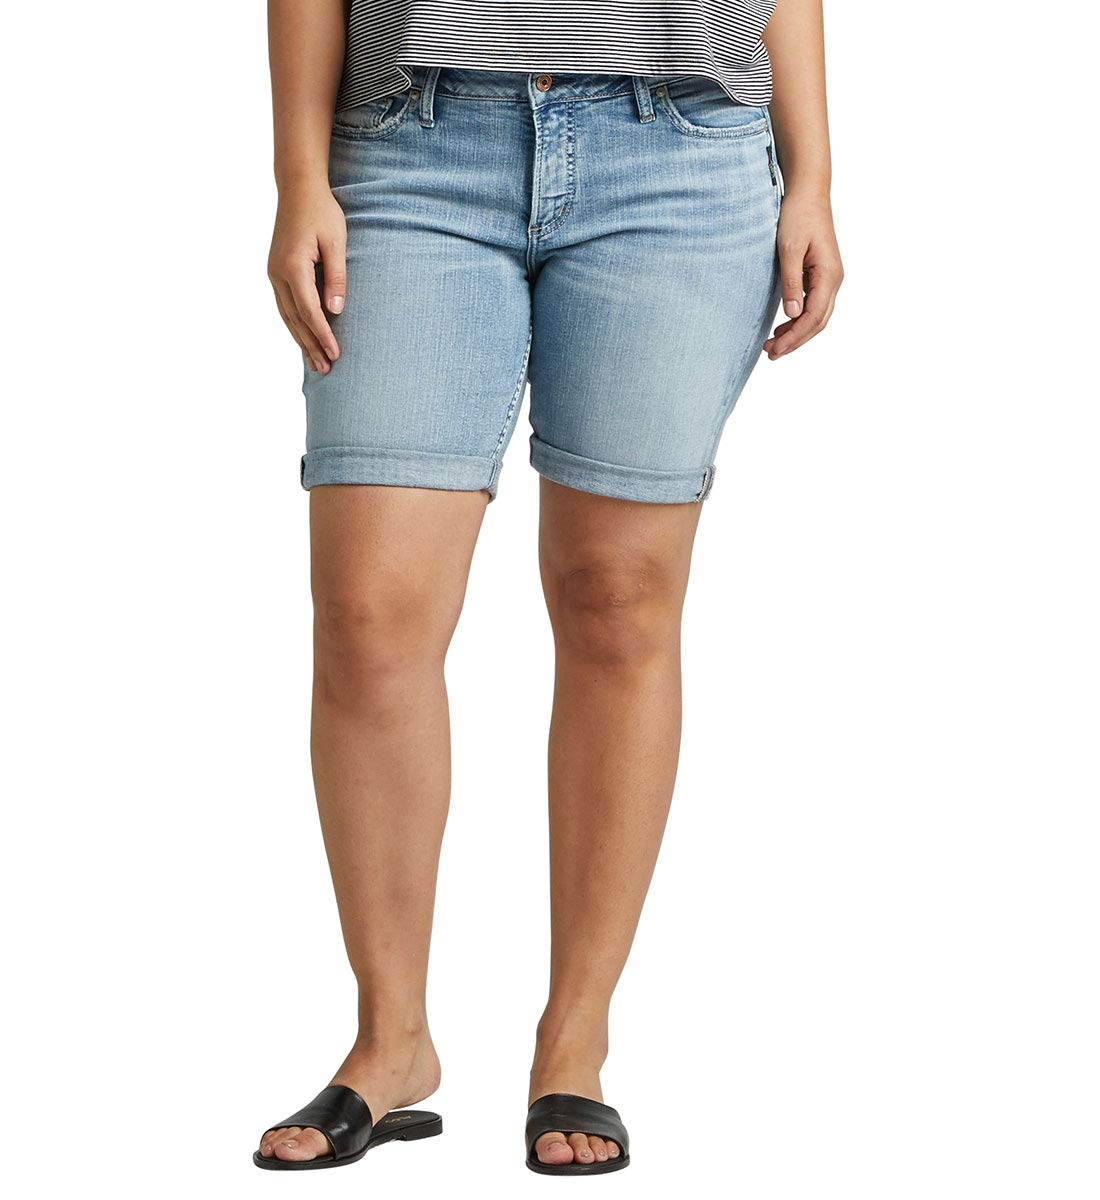 Silver Jeans Co. Women's Plus Size Suki Mid-Rise Curvy Bermuda Short, Vintage Light, 18W x 9L by Silver Jeans Co.